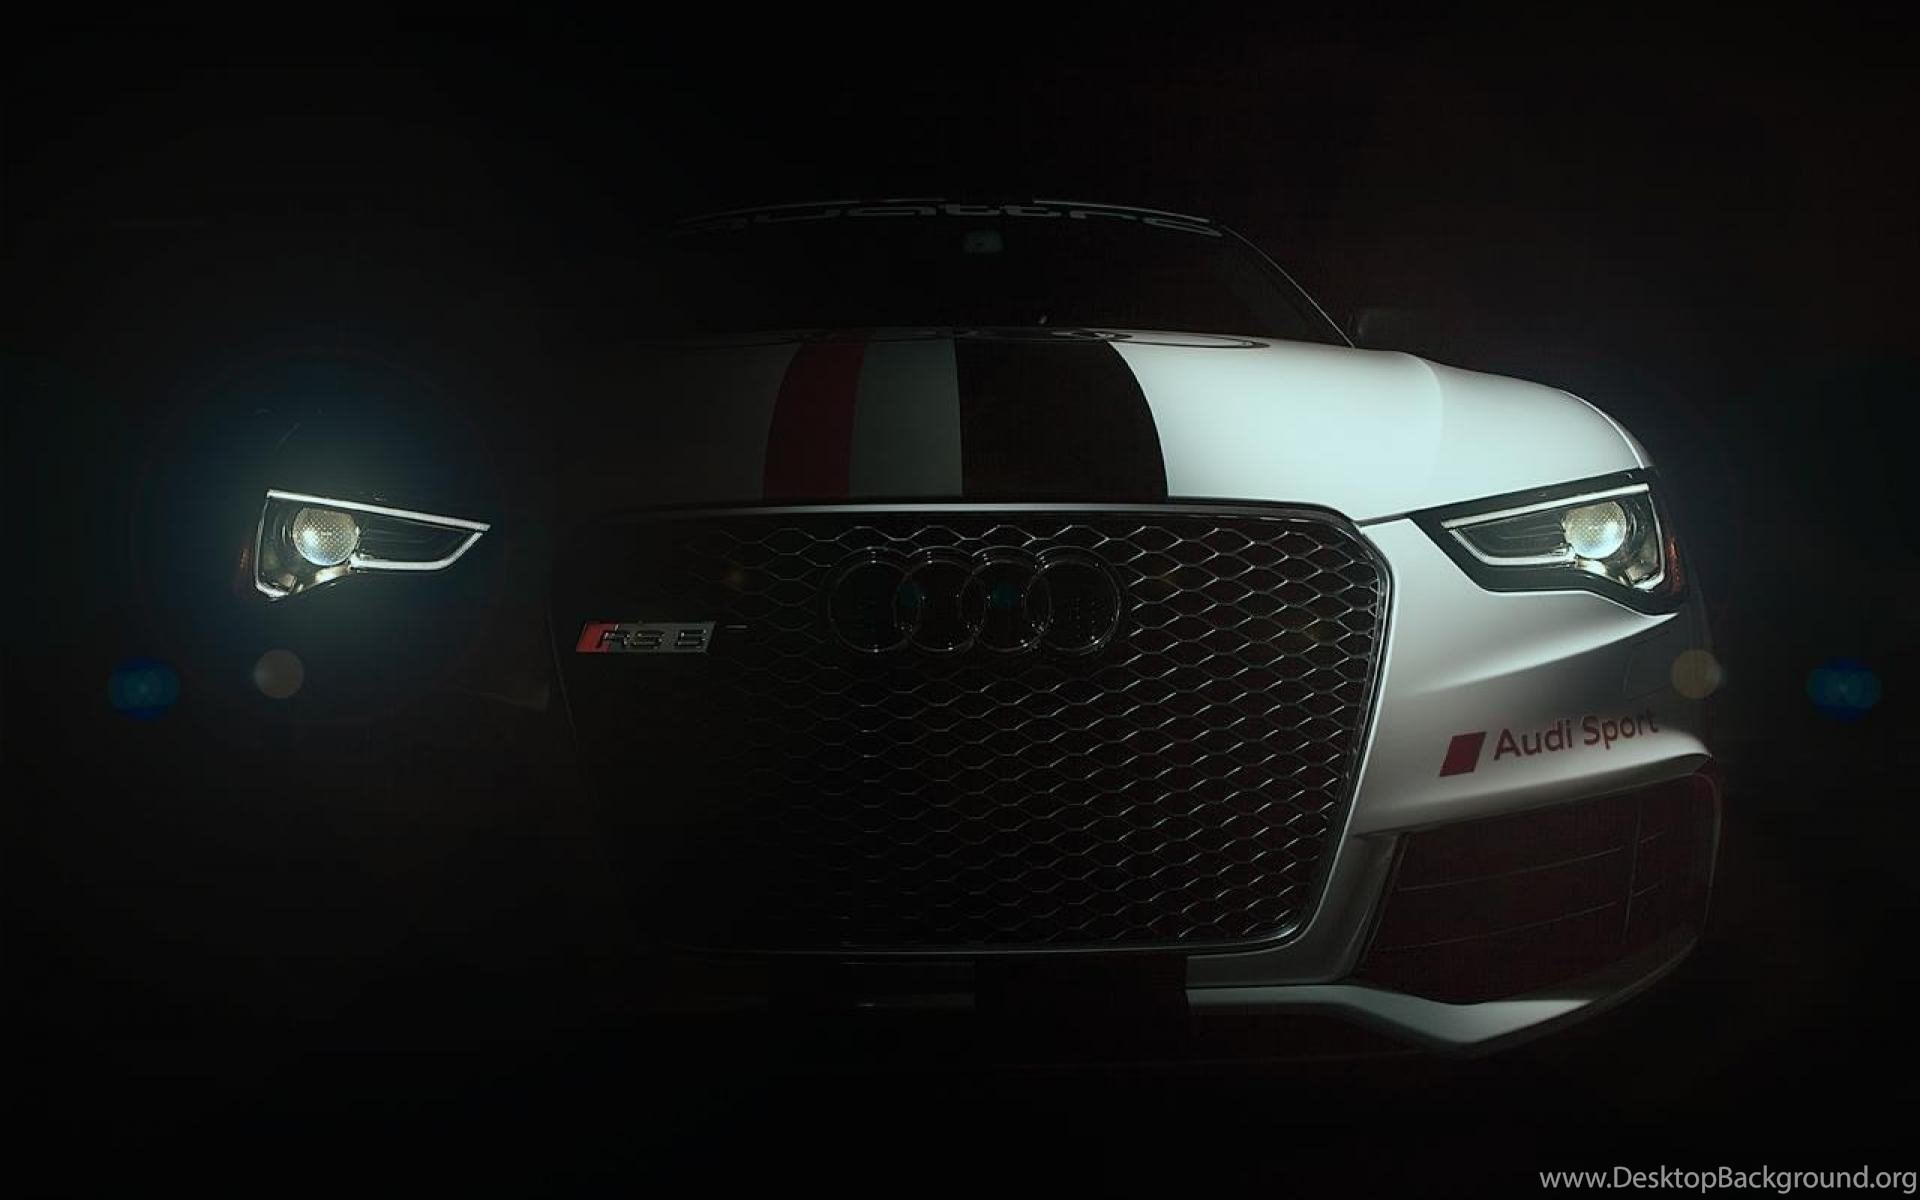 Rs6 Hd Wallpapers Desktop Background